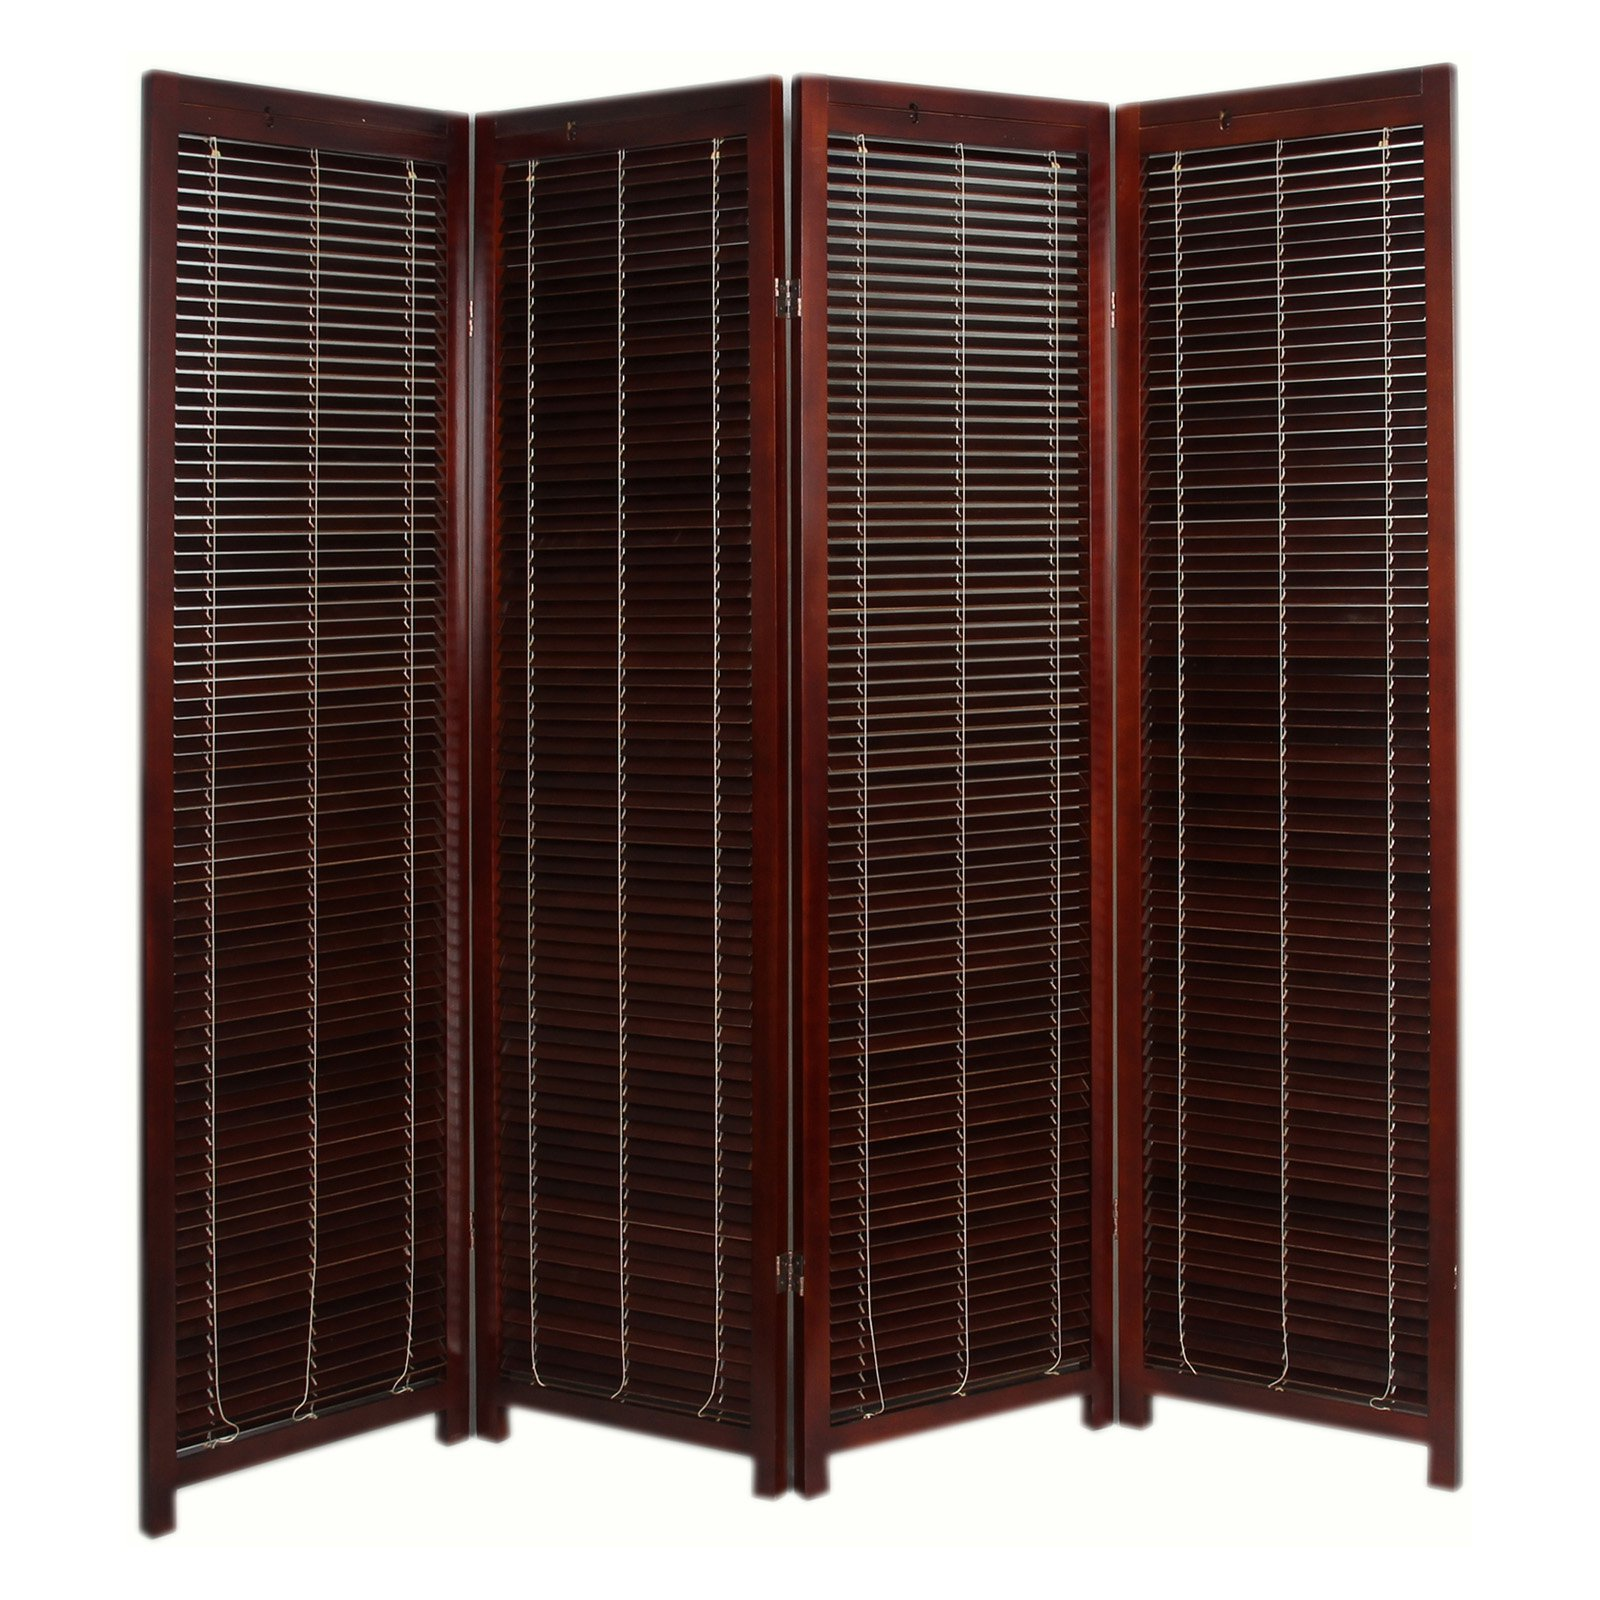 Tranquility Wooden Shutter Screen Room Divider - 4 Panel - Walnut